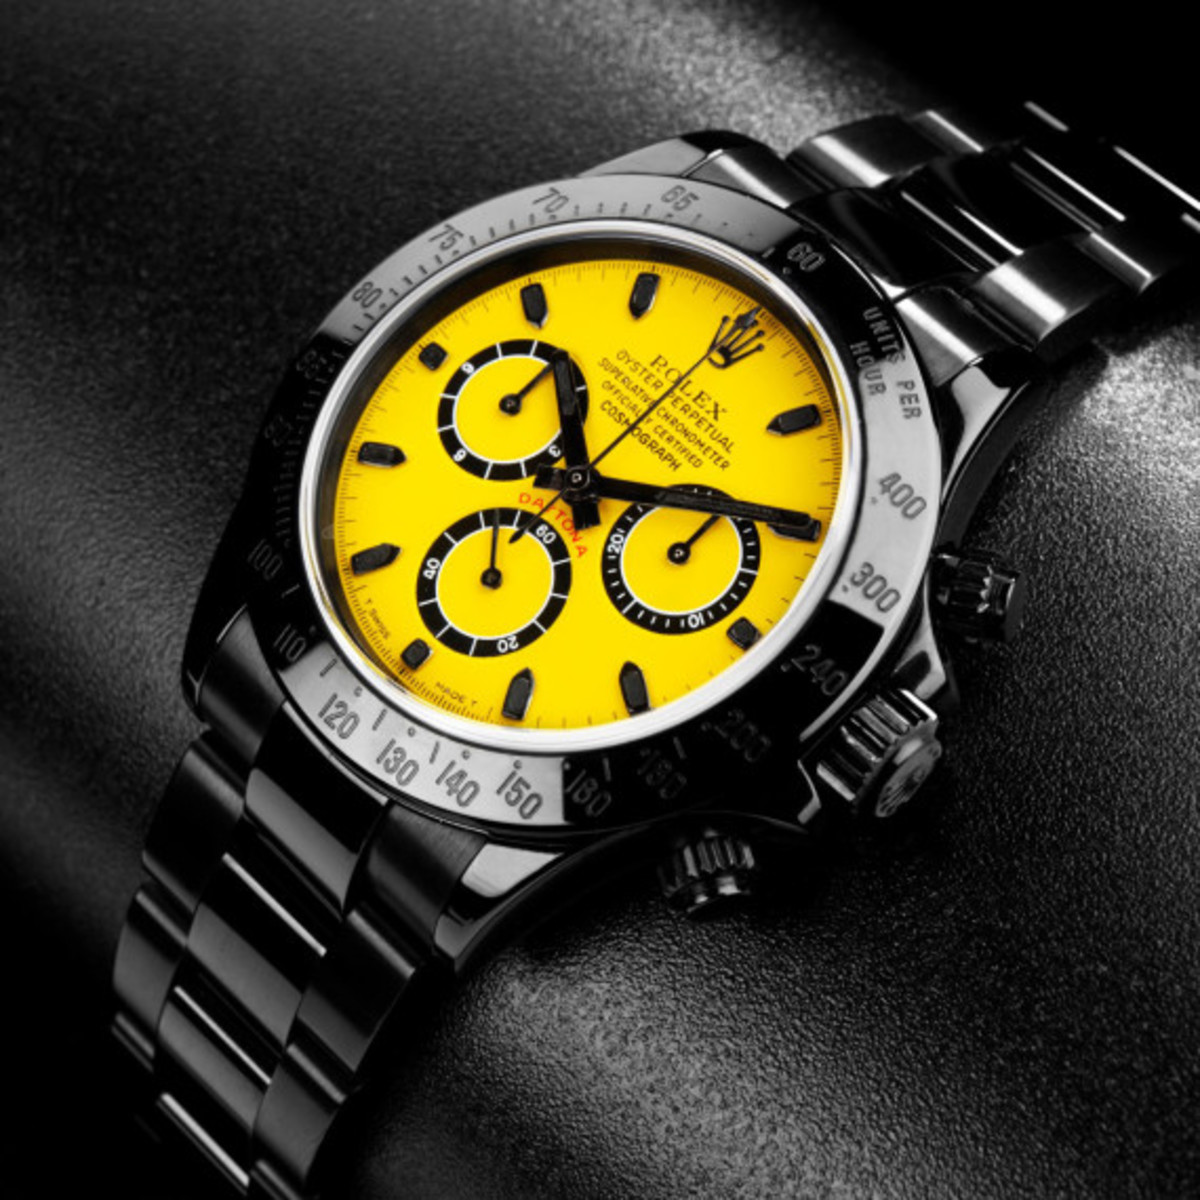 BAMFORD WATCH DEPARTMENT – Rolex Cosmograph Daytona Chronograph Collection - 0